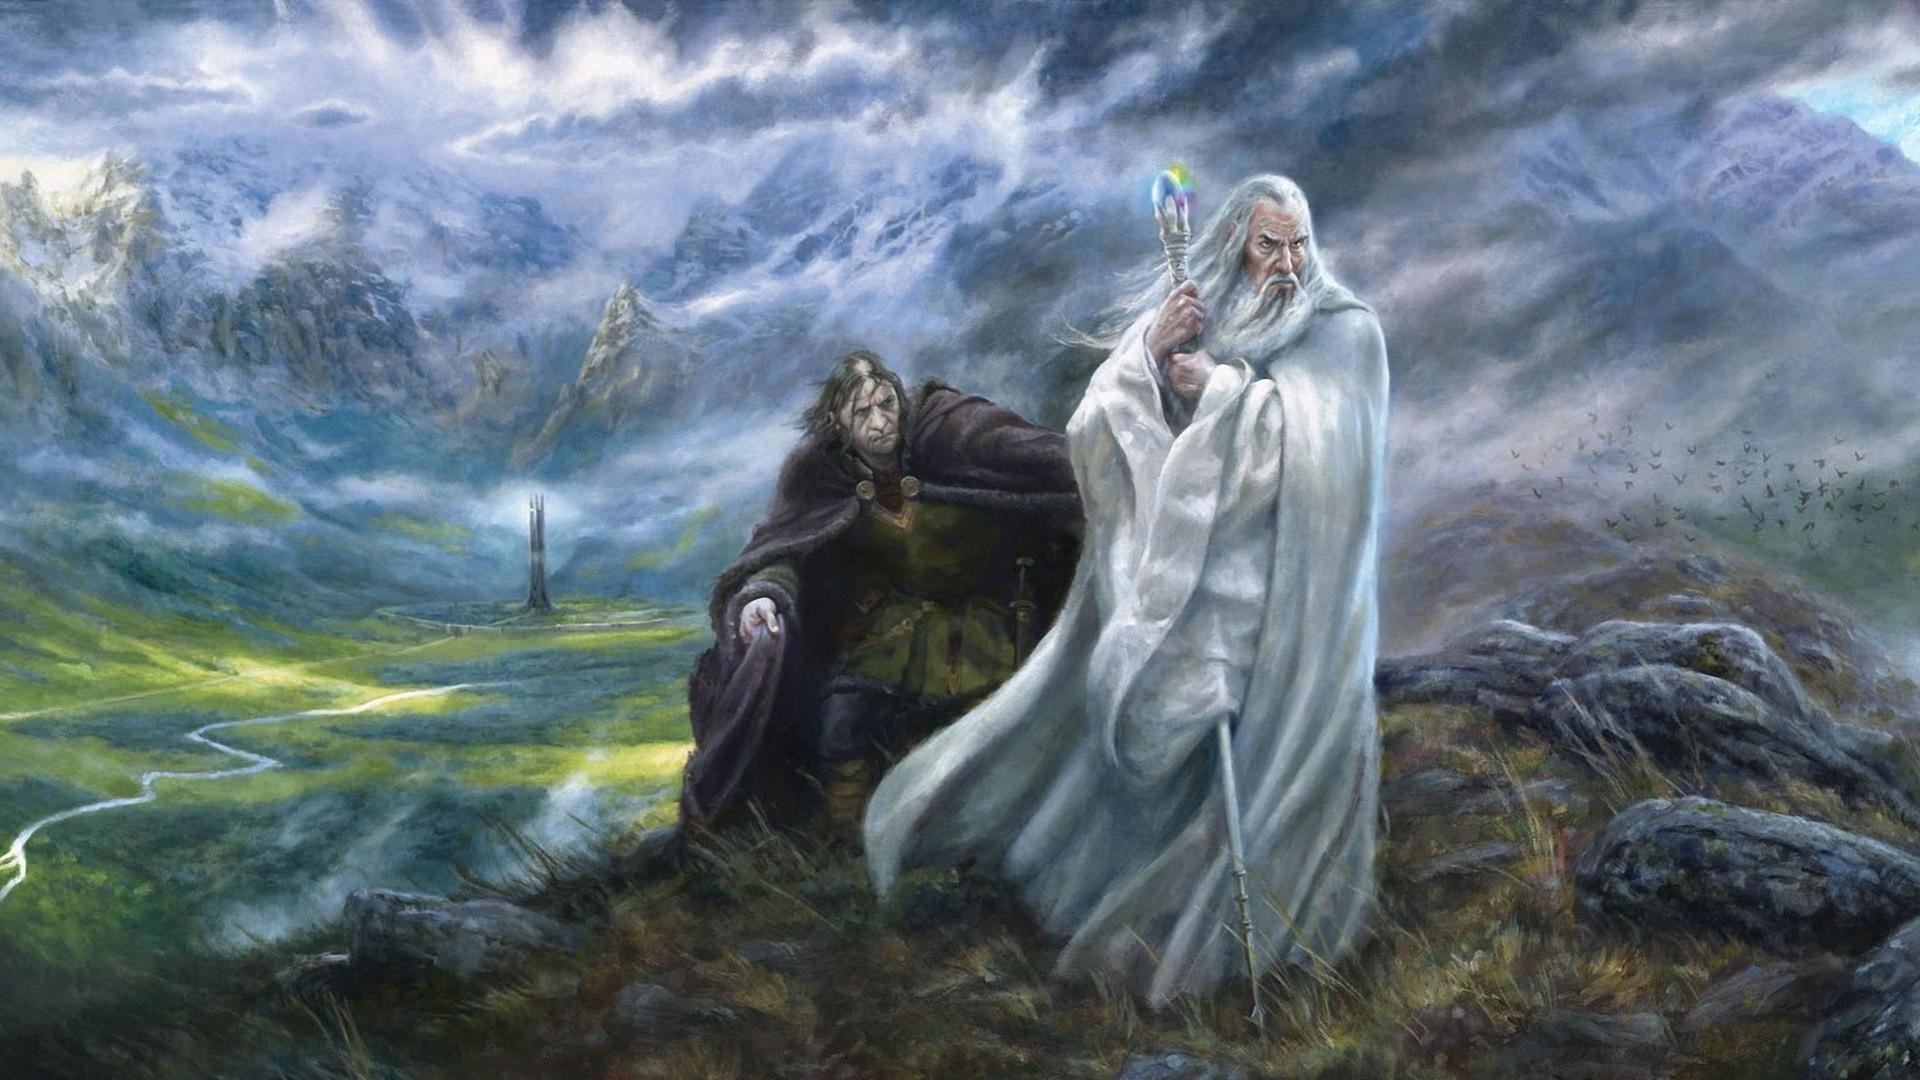 Free Download The Lord Of The Rings Lotr Wallpaper Id 345750